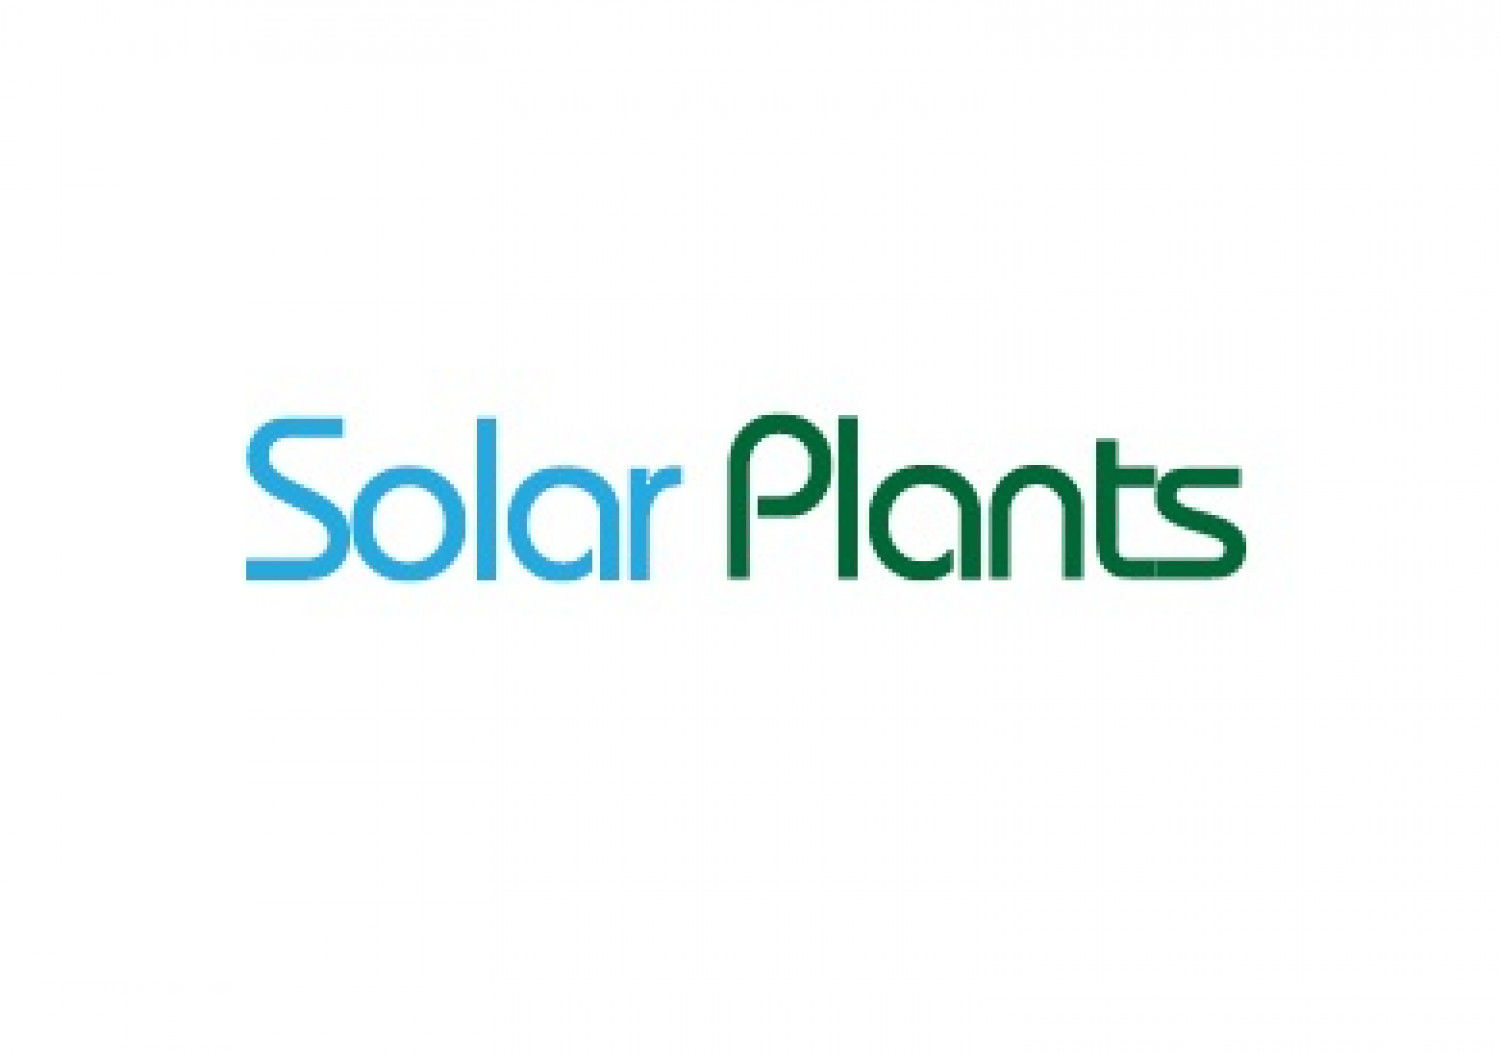 Solar Panels for Sale | Visual.ly